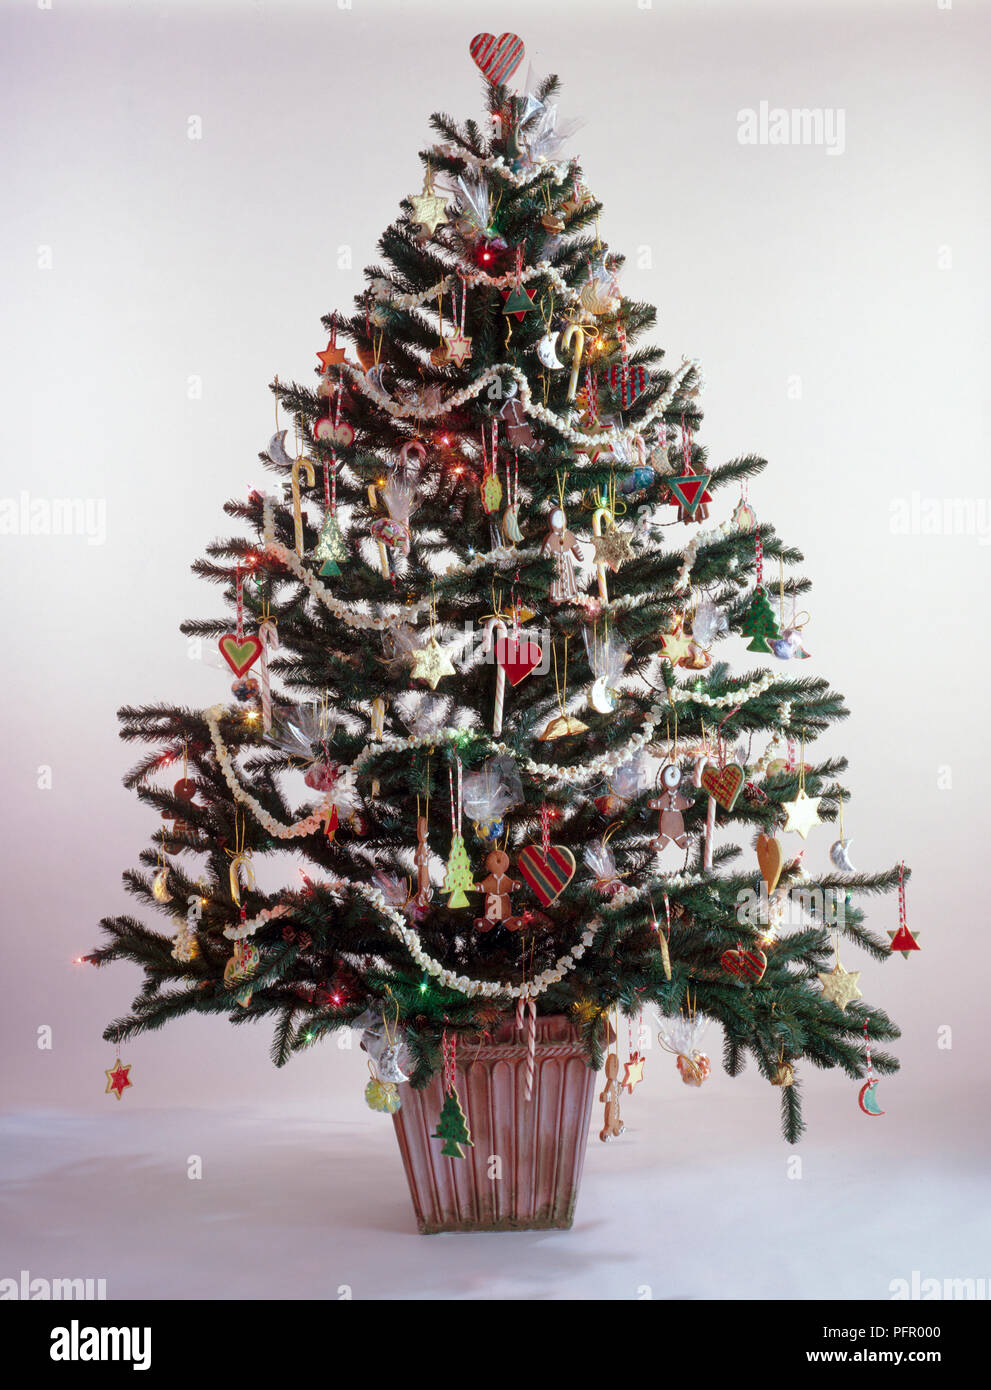 Christmas Tree With Natural Decorations Of Biscuits And Popcorn